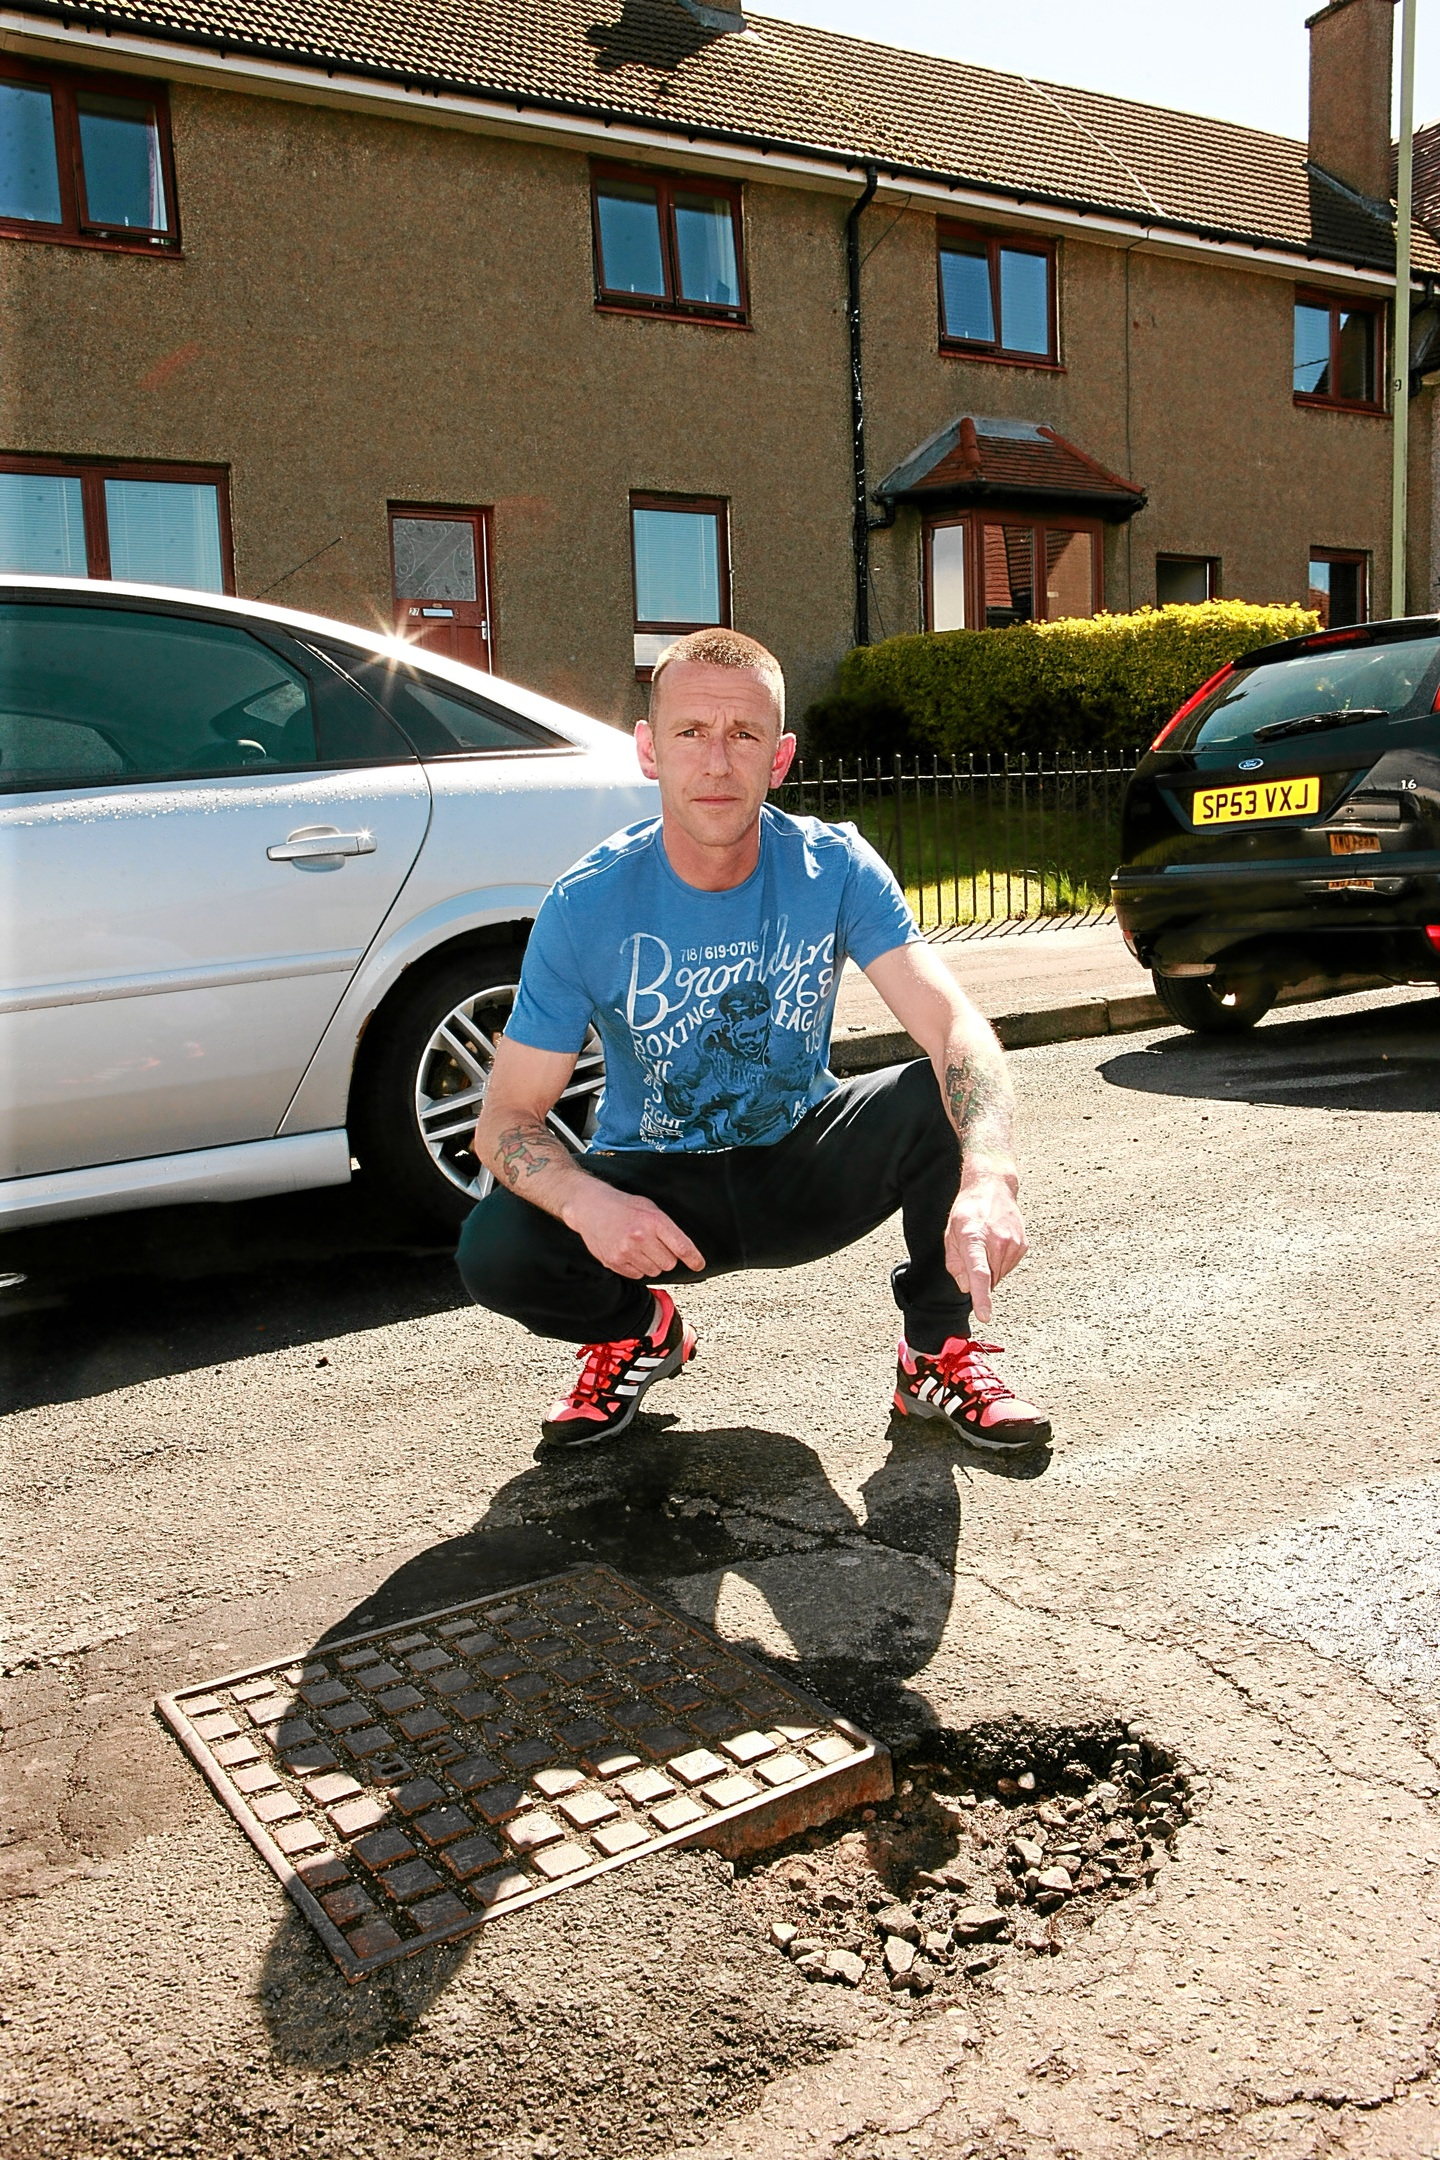 Scott Bruce, 48, has described the potholes on Beauly Crescent in Kirkton as a shambles